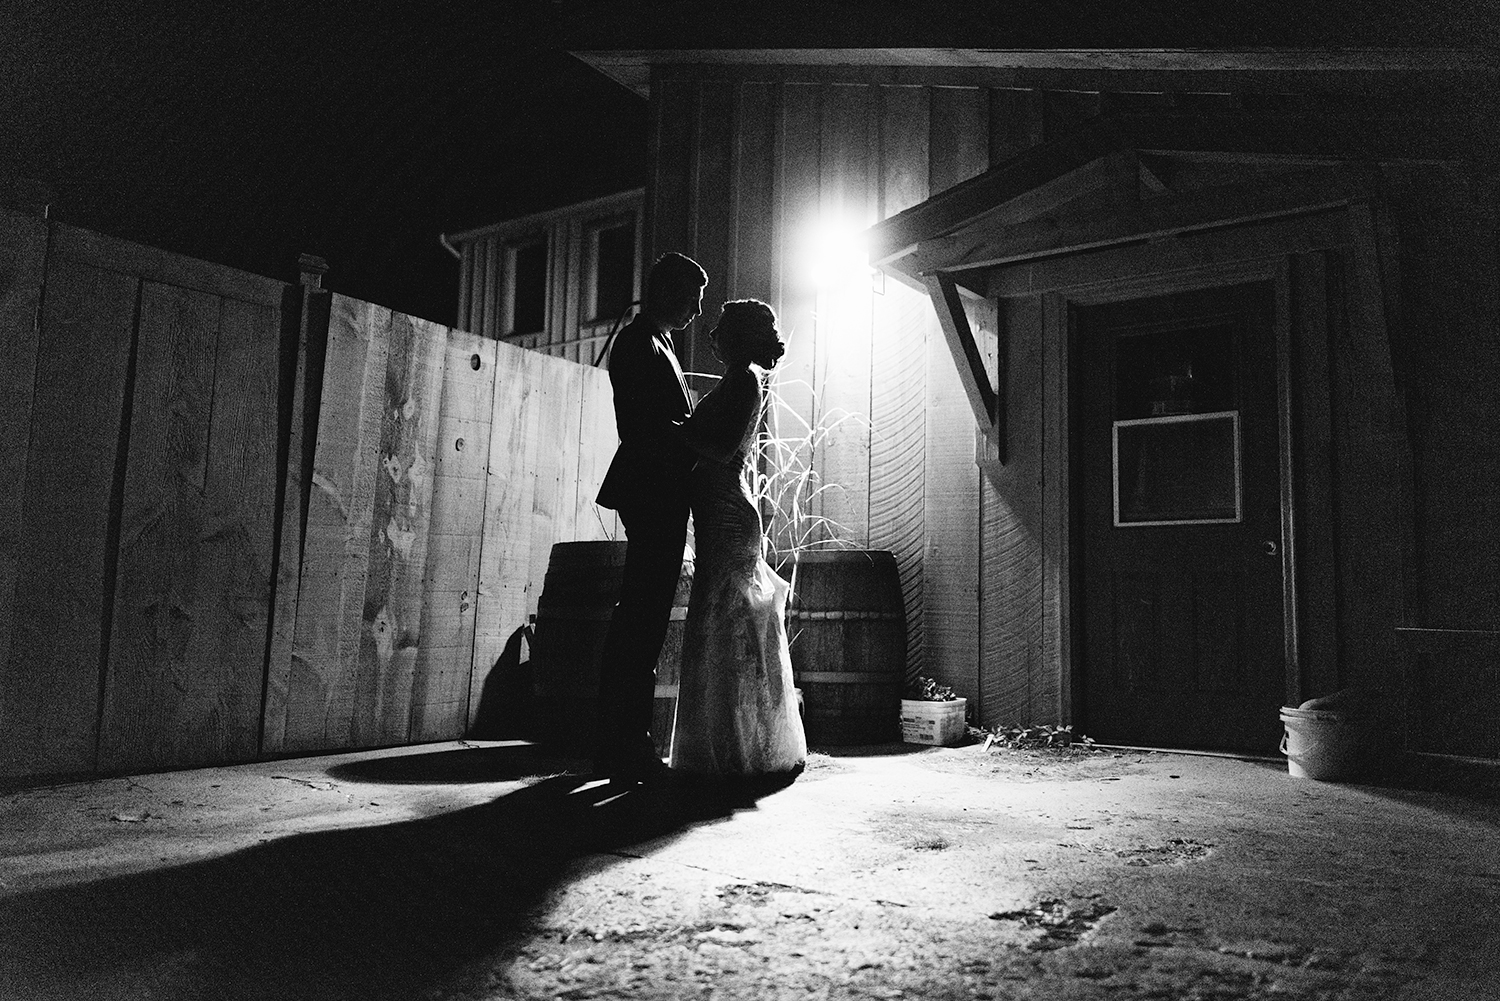 bw-outside-night-portrait-intimates-romantic-moody-toronto's-best-analog-documentary-wedding-photographers-candid-photography-london-ontario-wedding-inspiration.jpg